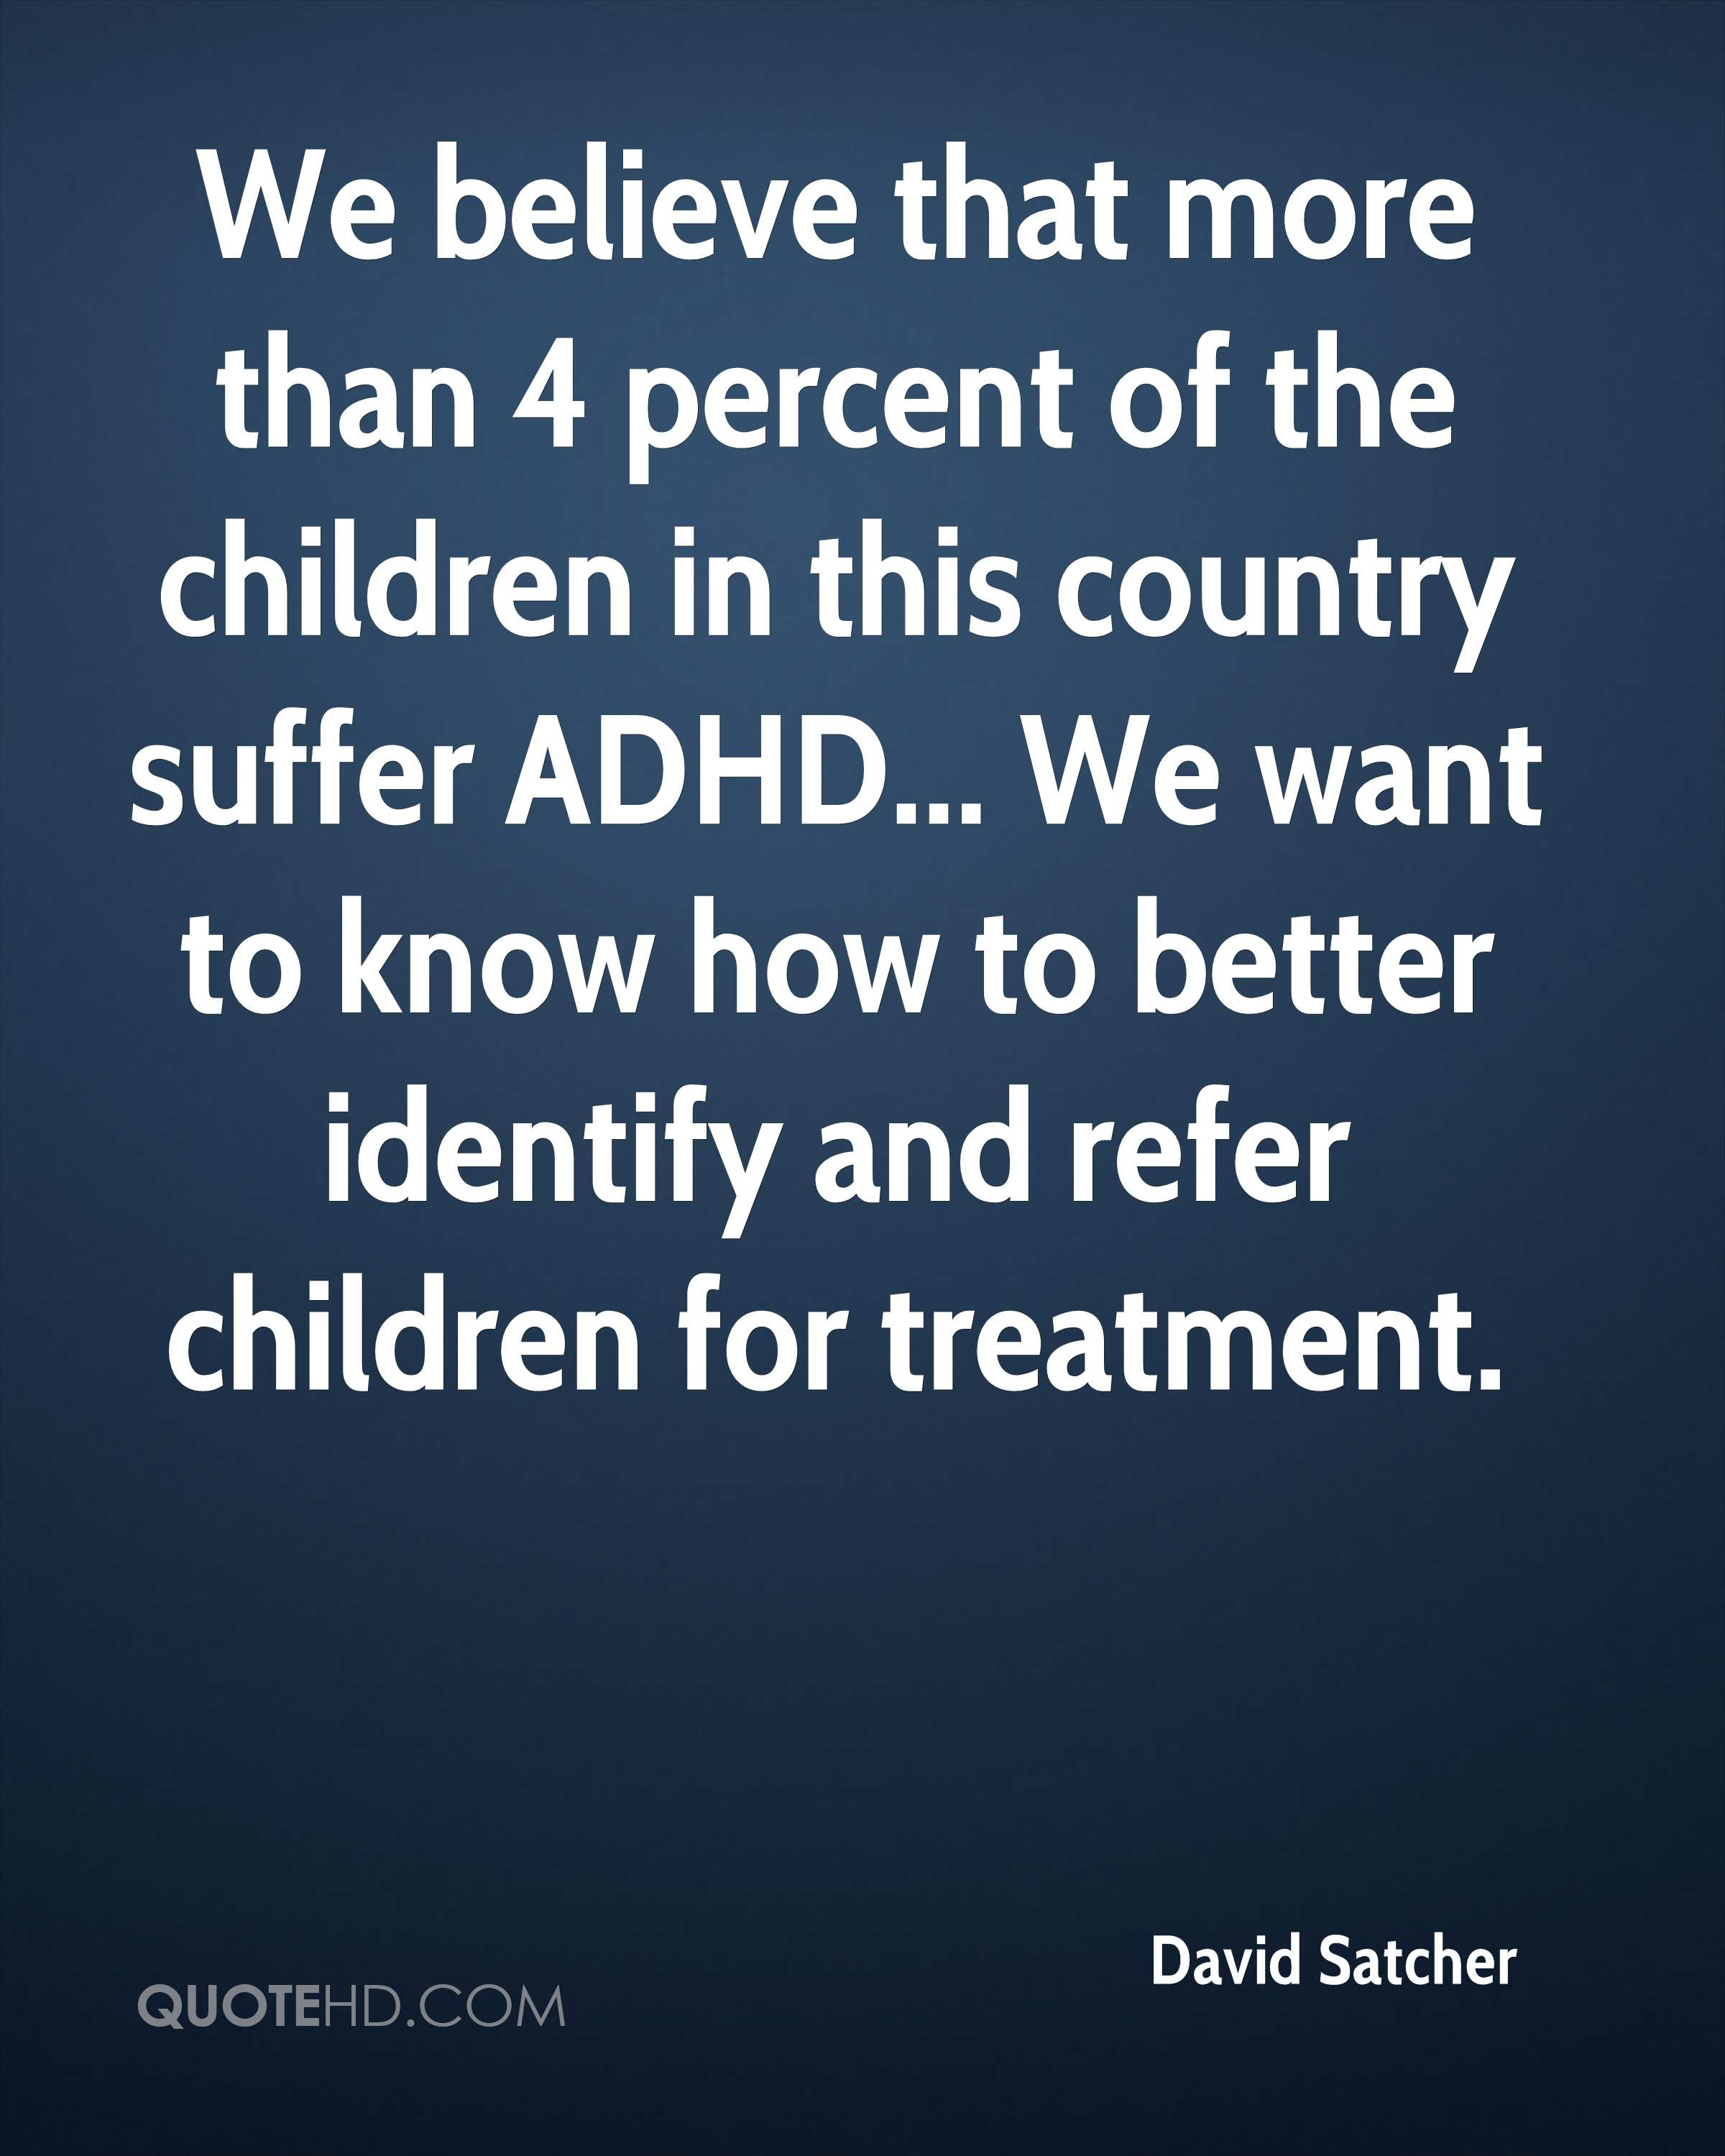 We believe that more than 4 percent of the children in this country suffer ADHD... We want to know how to better identify and refer children for treatment.